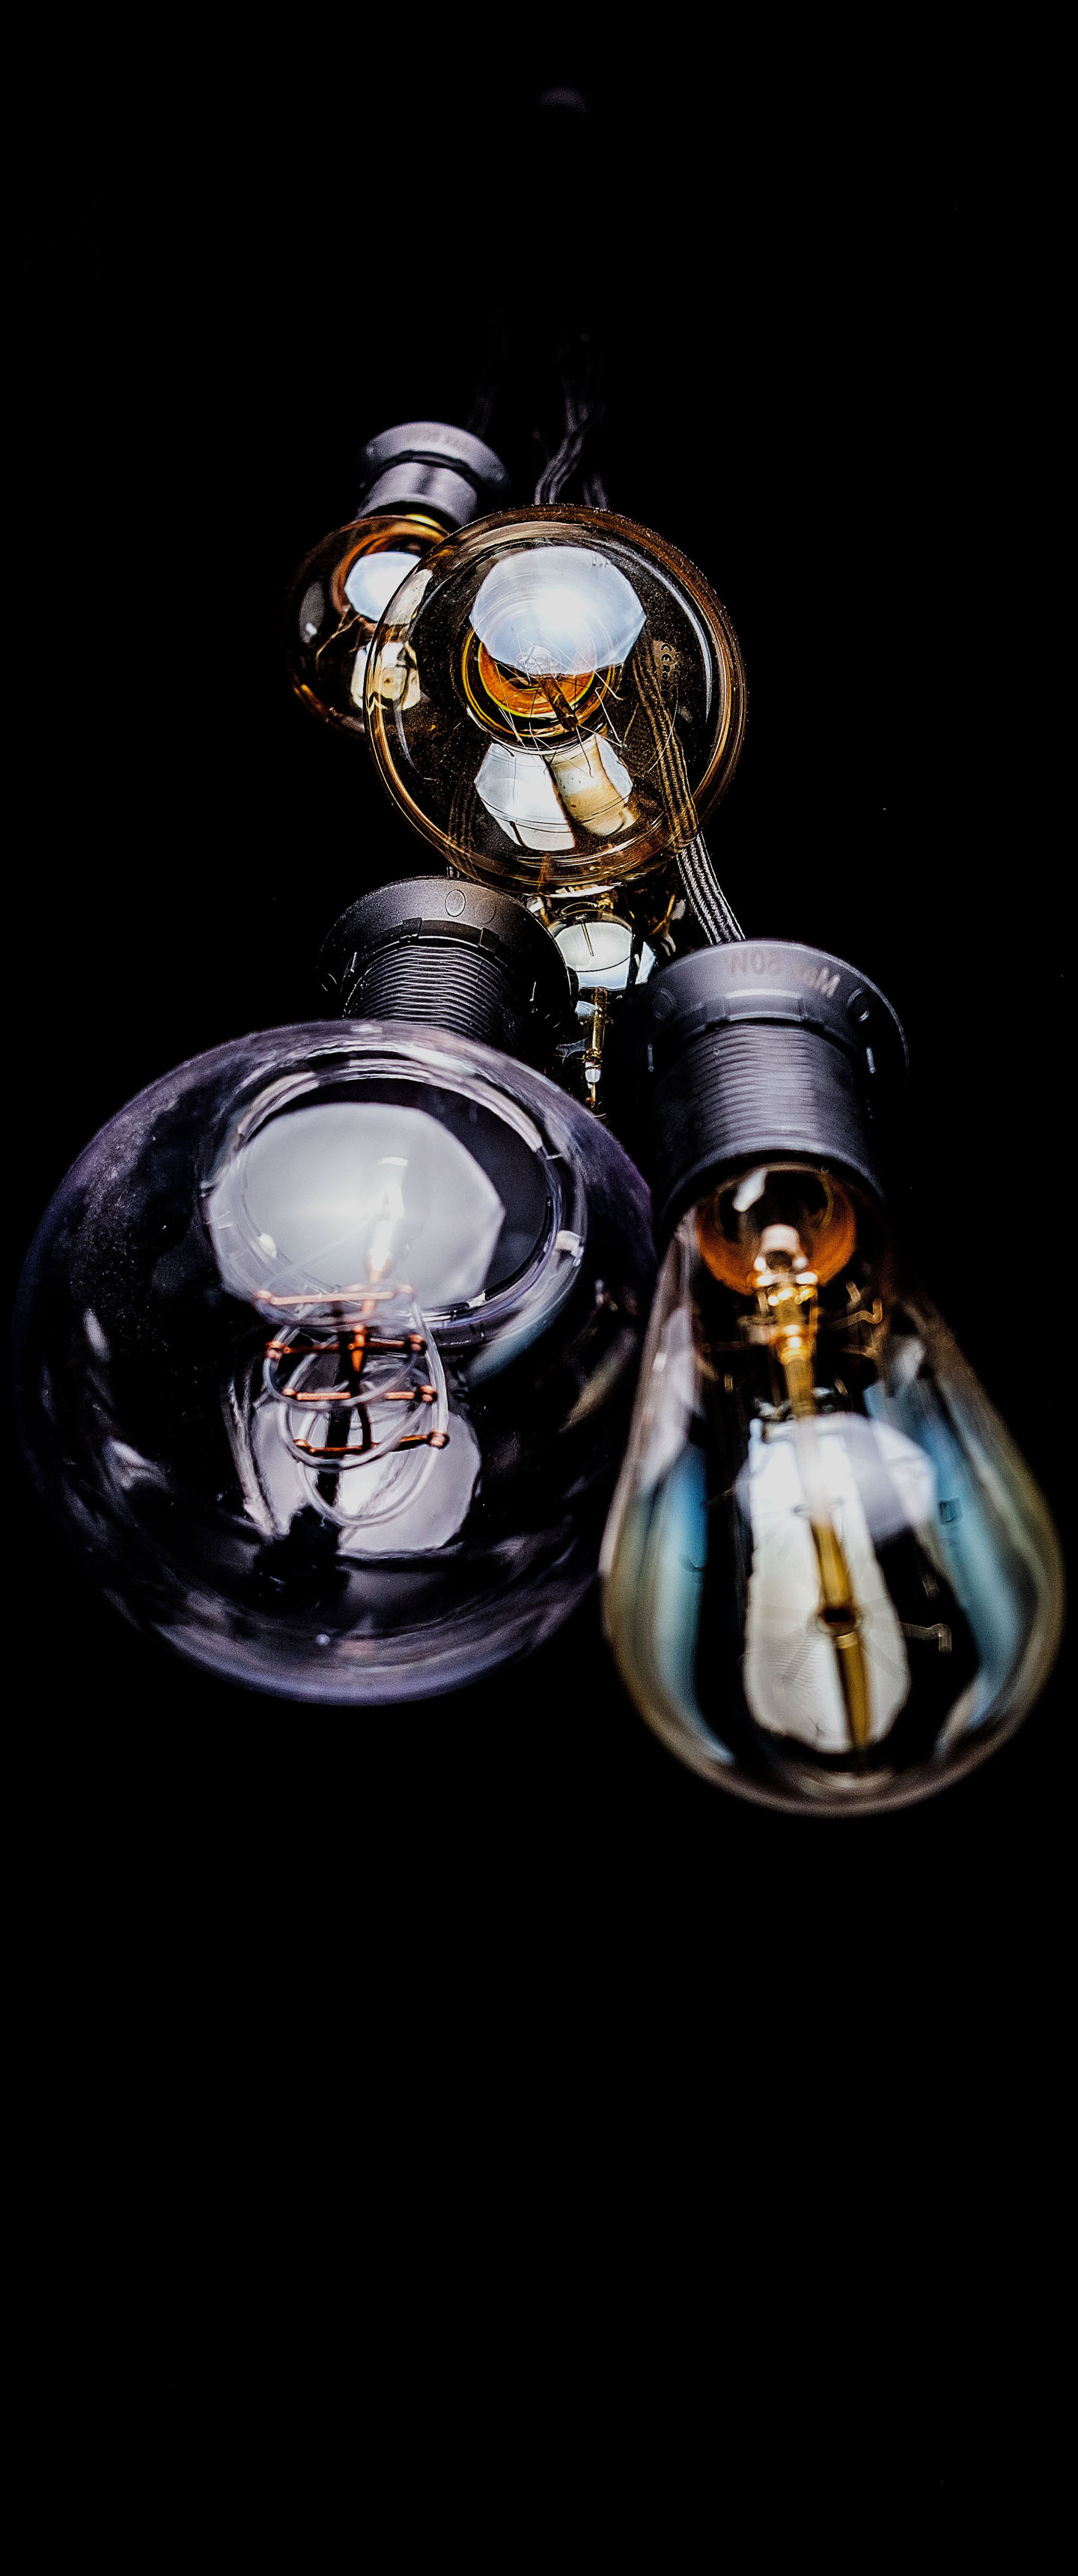 Light Bulb Moment Vertical 21 9 Wallpaper Ultrawide